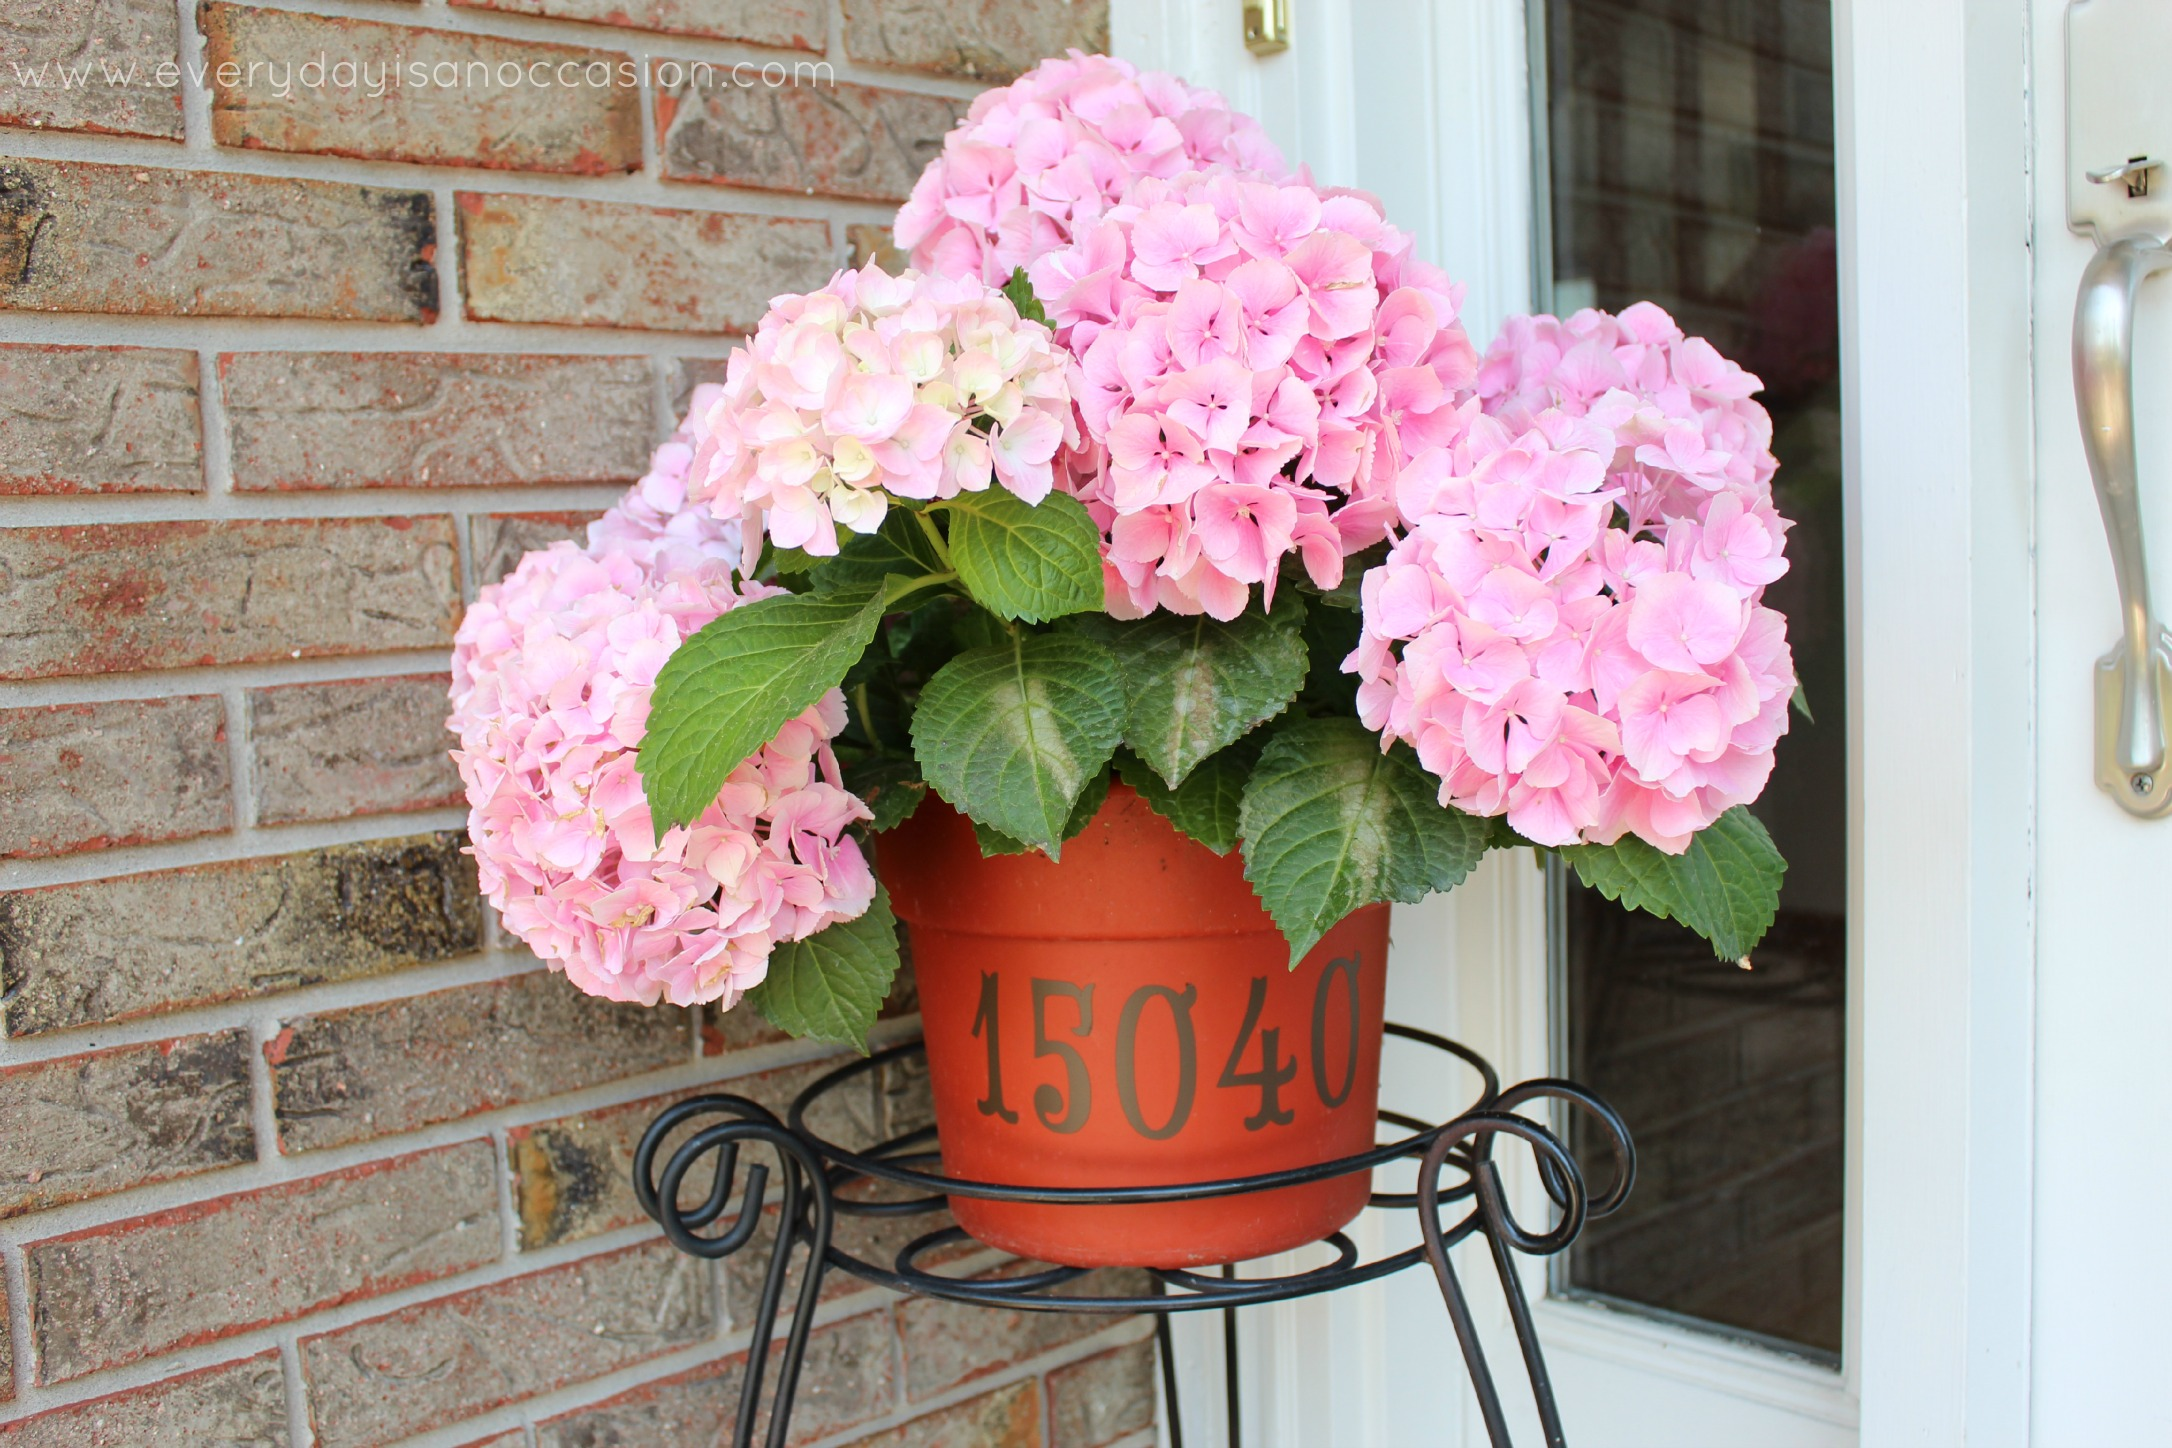 House Numbers on a Hydrangea Planter